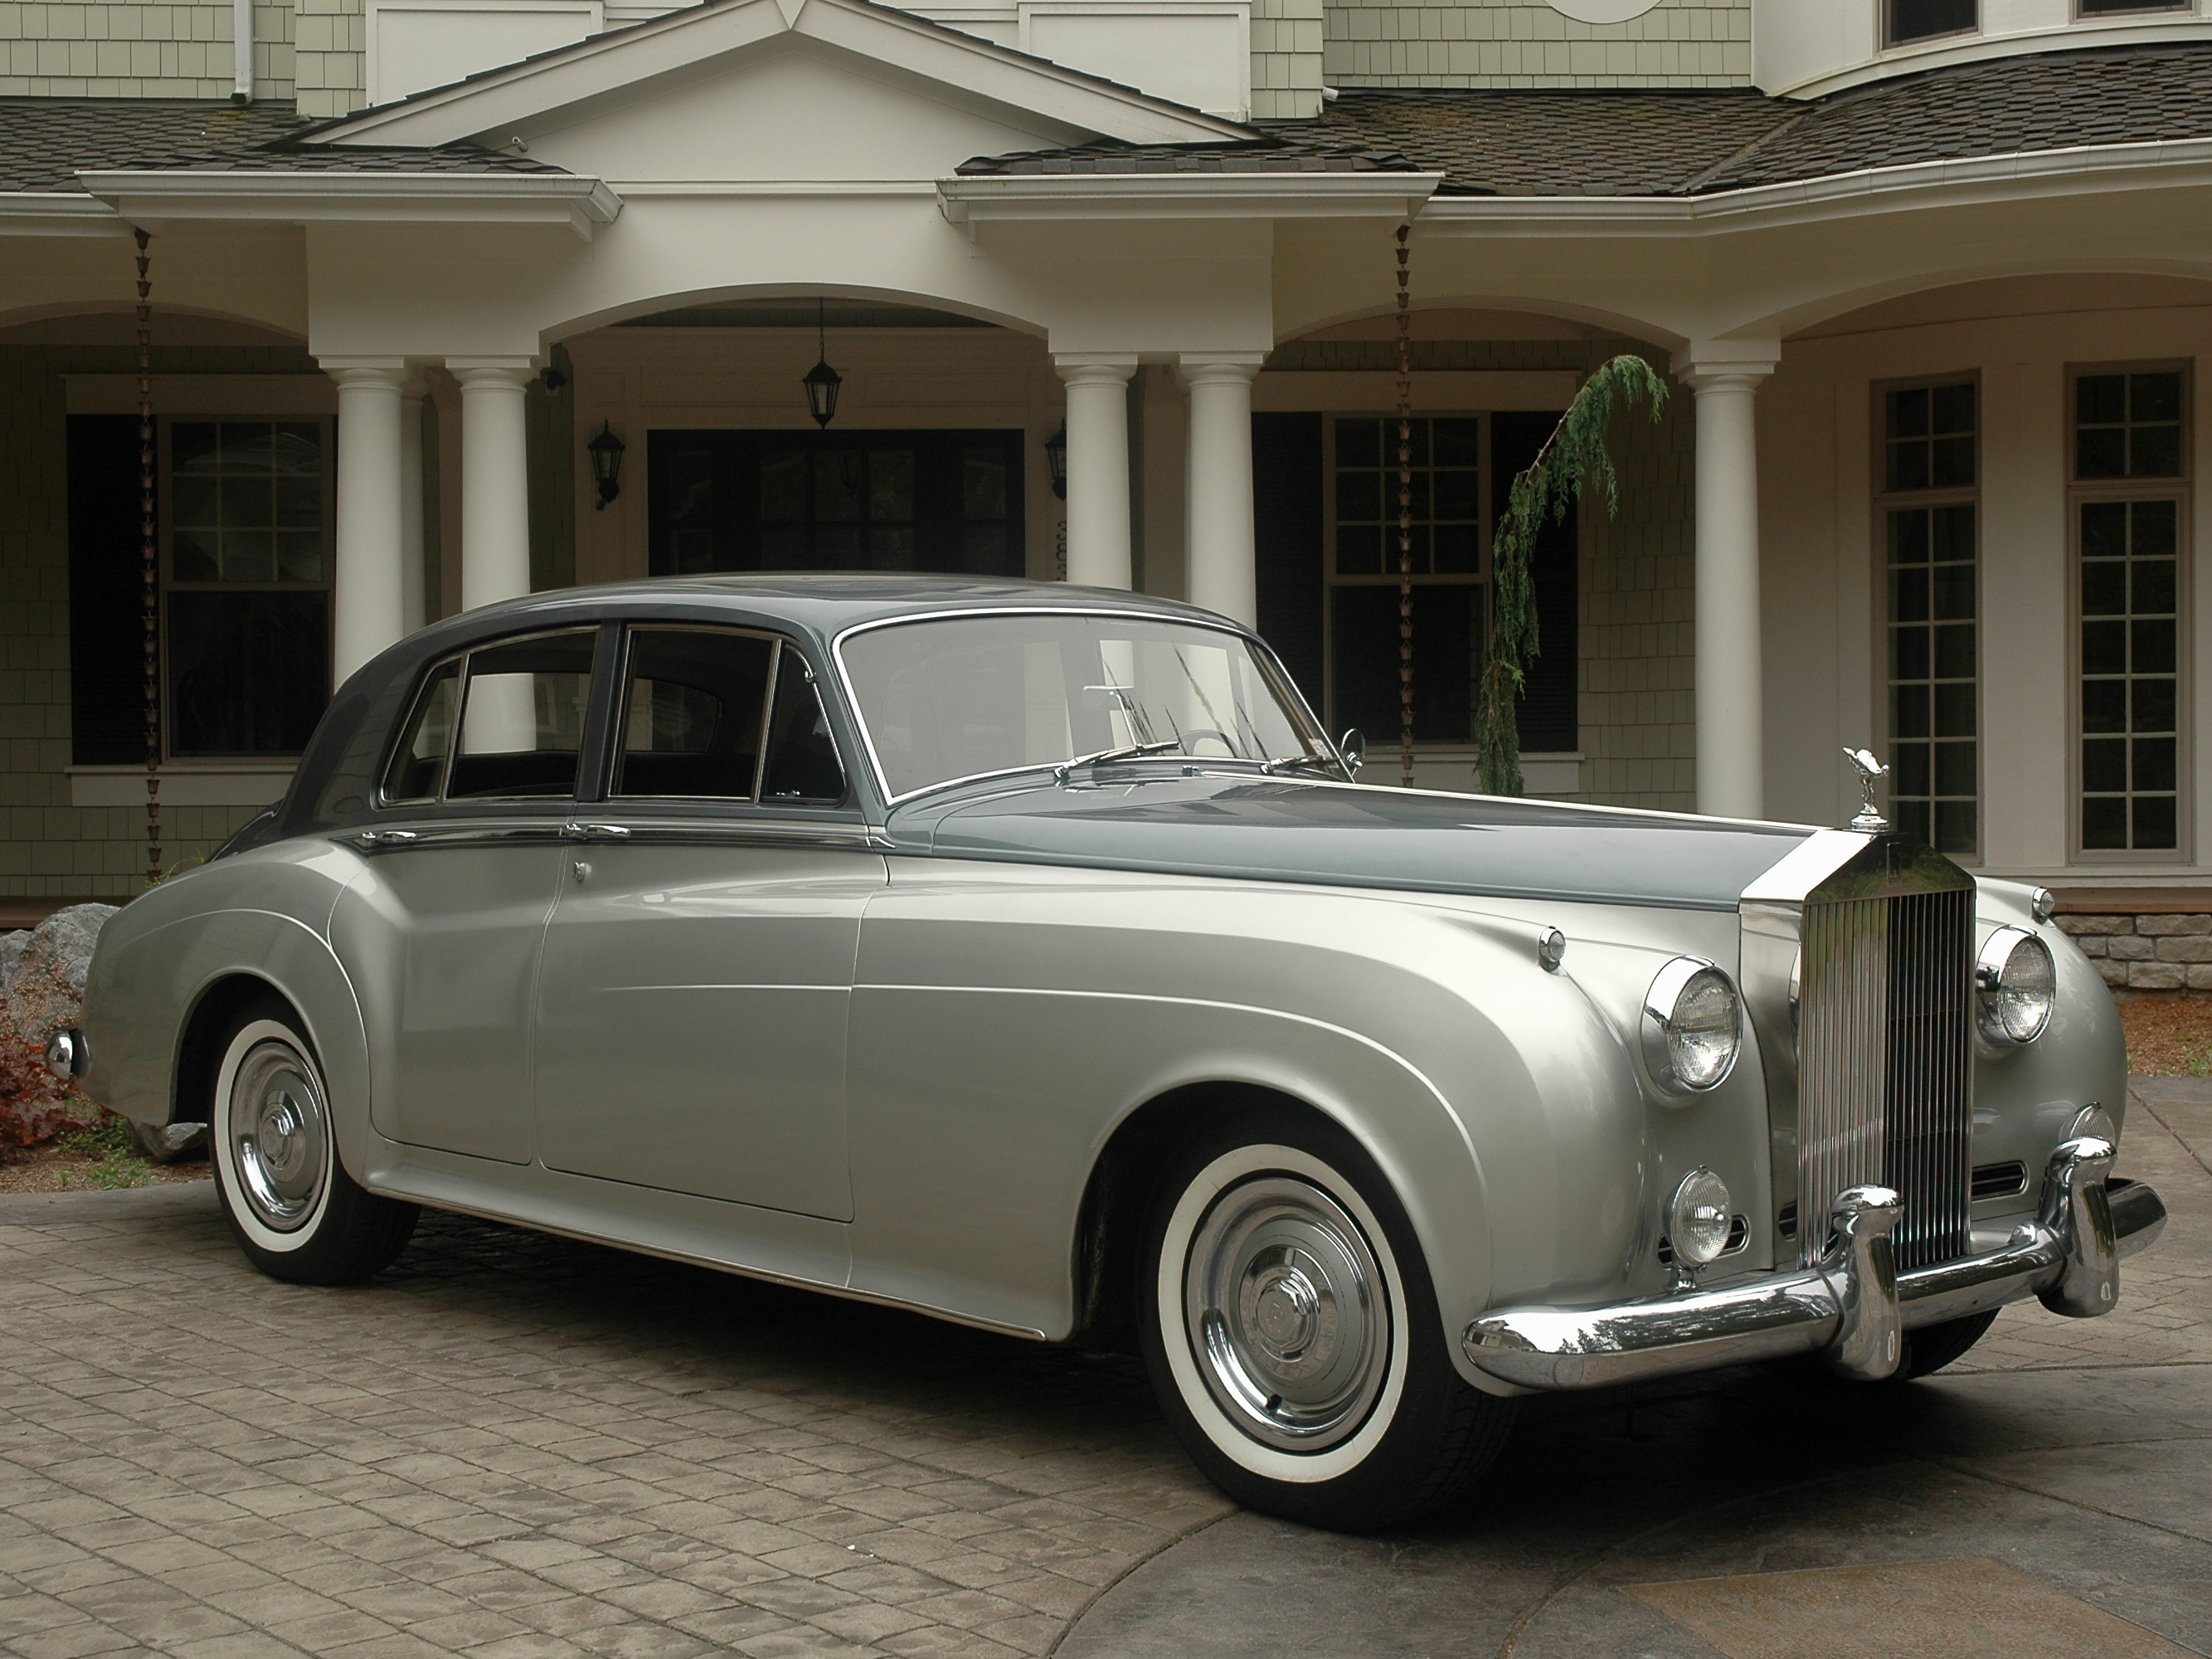 rolls royce silver cloud ii information and photos. Black Bedroom Furniture Sets. Home Design Ideas